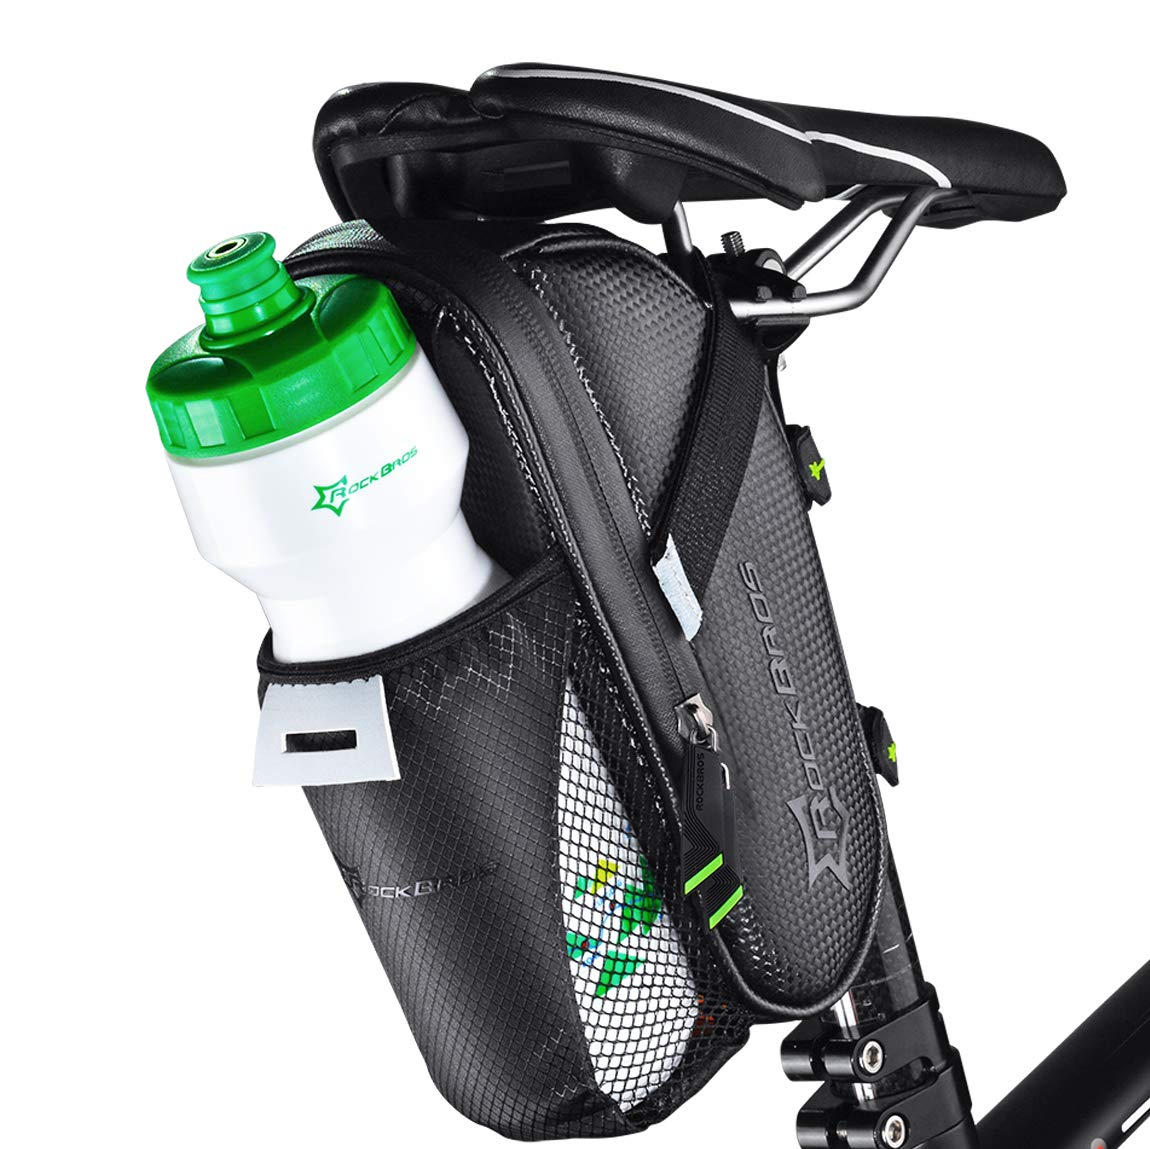 ROCK BROS 1.6L Bike Saddle Bag with Water Bottle Pouch Waterproof Bike Bags Under Seat Pack for Mountain Road Bicycles Storage Repair Kit Tools Gear